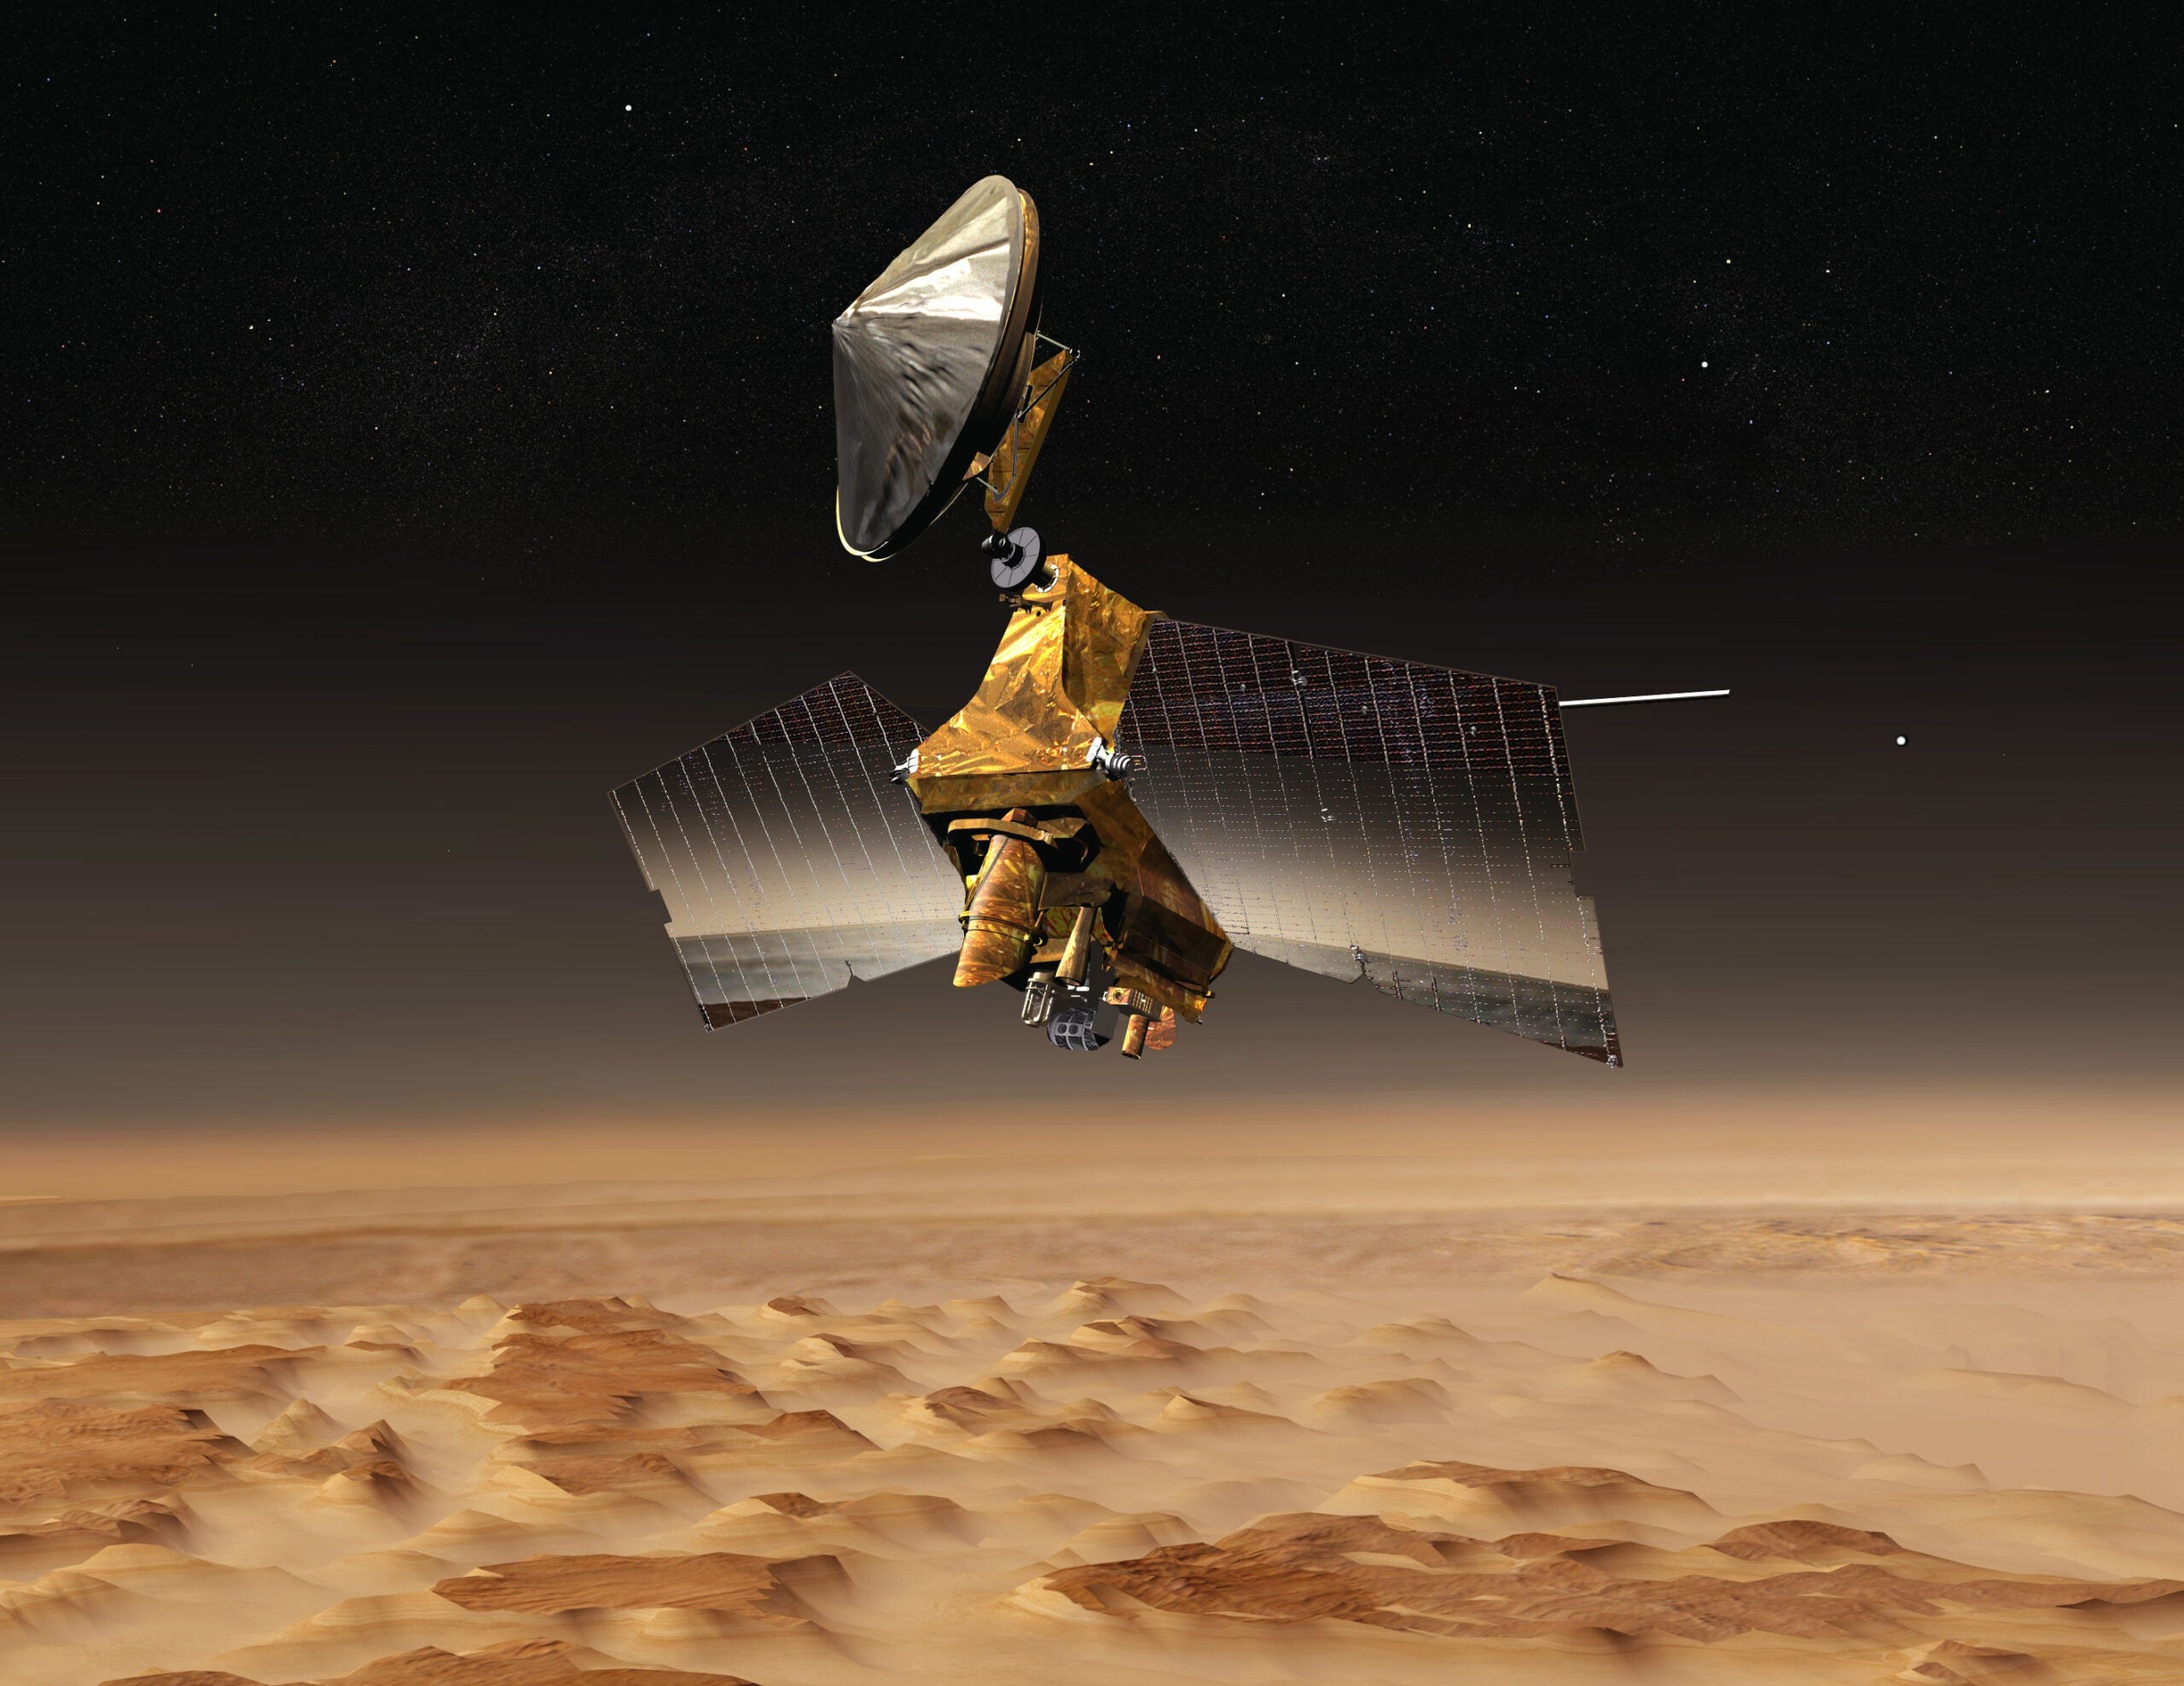 The Mars Reconnaissance Orbiter Has Been Exploring Mars For 10 Years